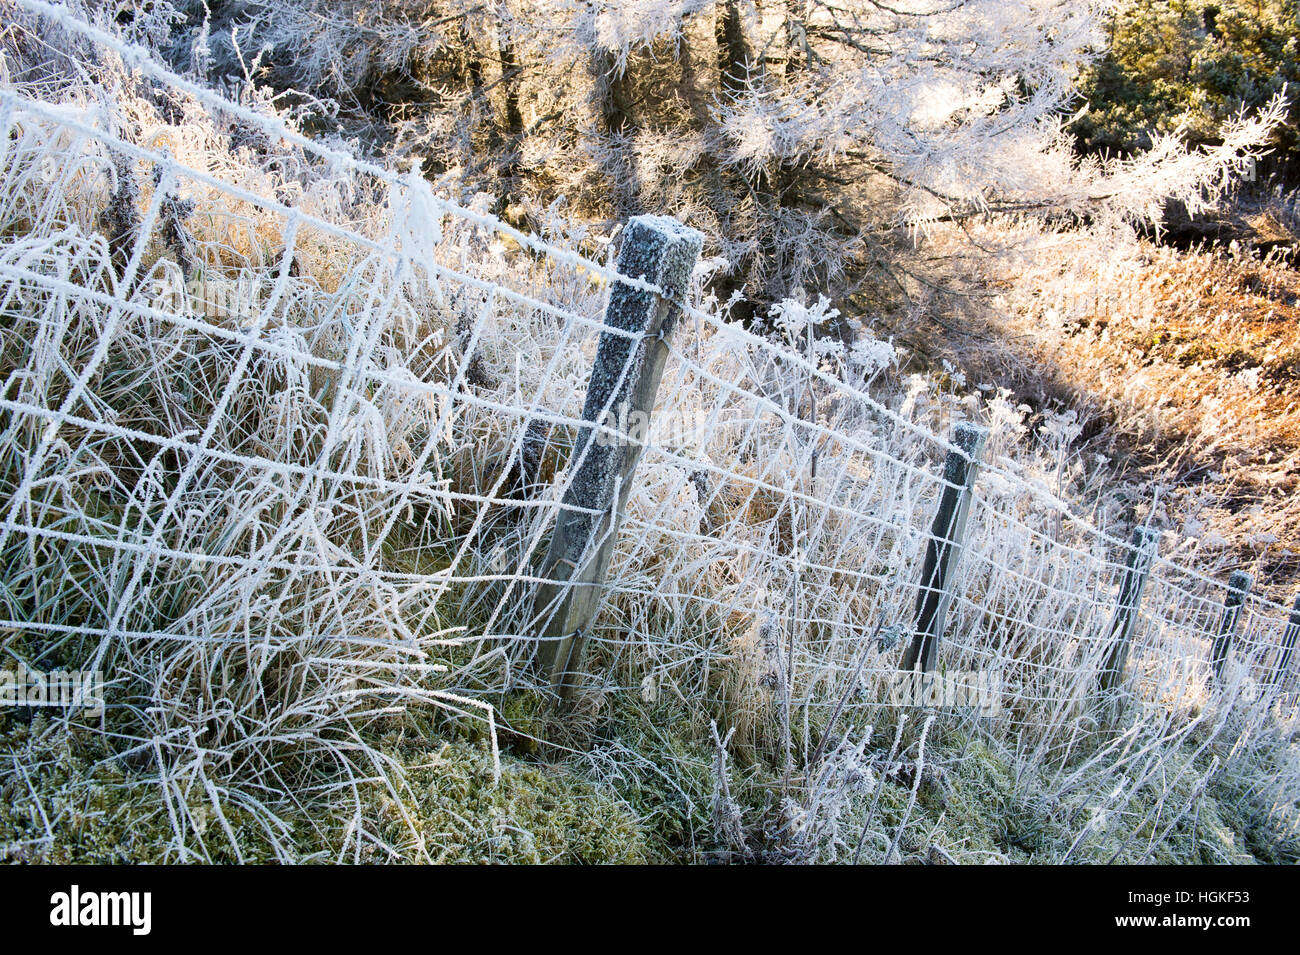 Hoar frost on a wire fence and grass down a slope in the Scottish borders. Scotland - Stock Image